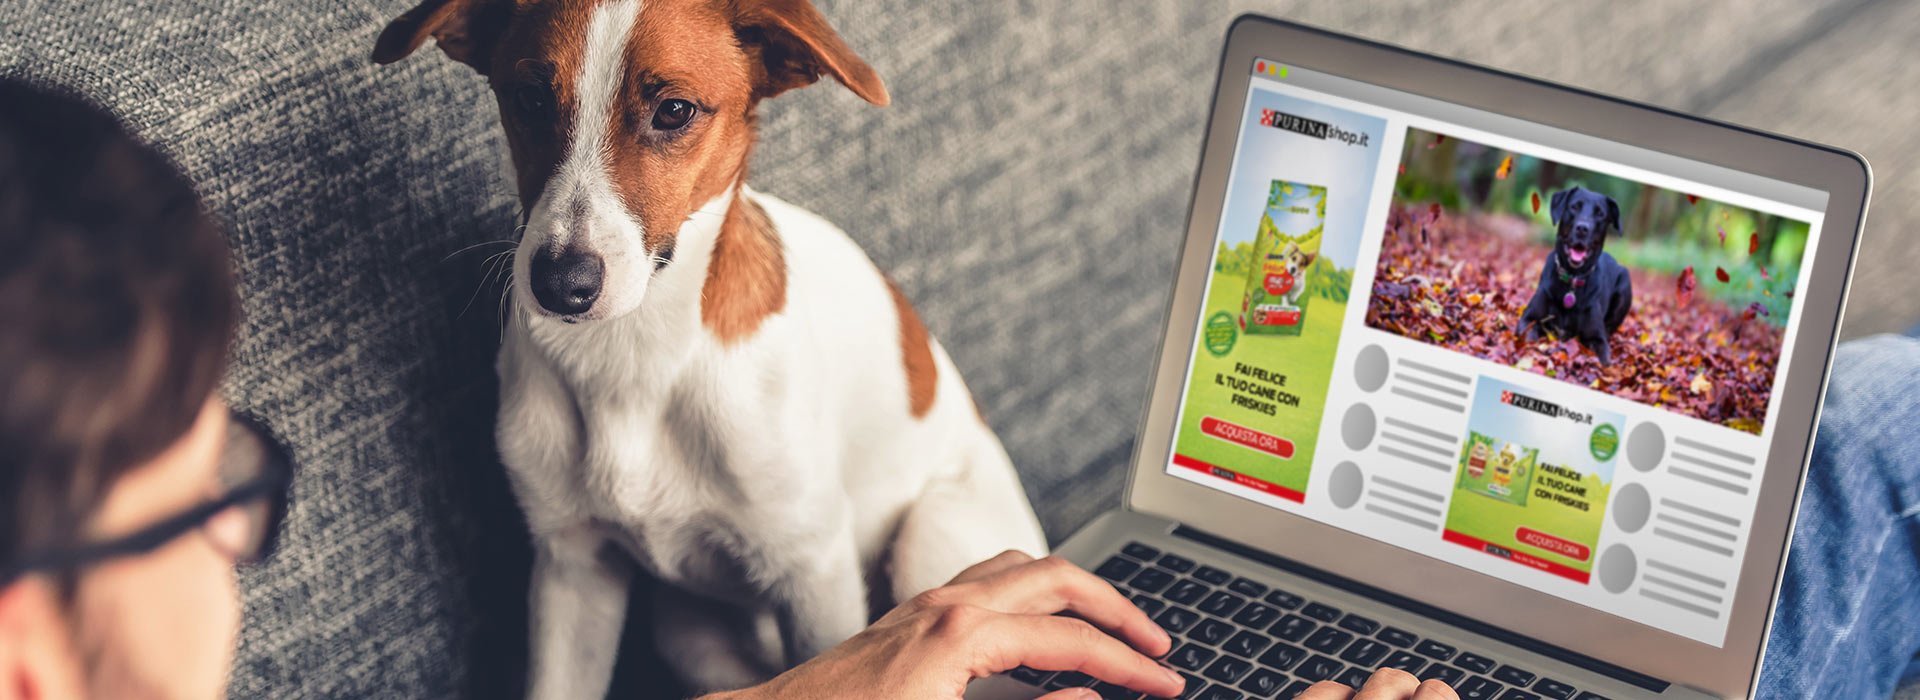 Creativity on animated banner ADW display for Purina